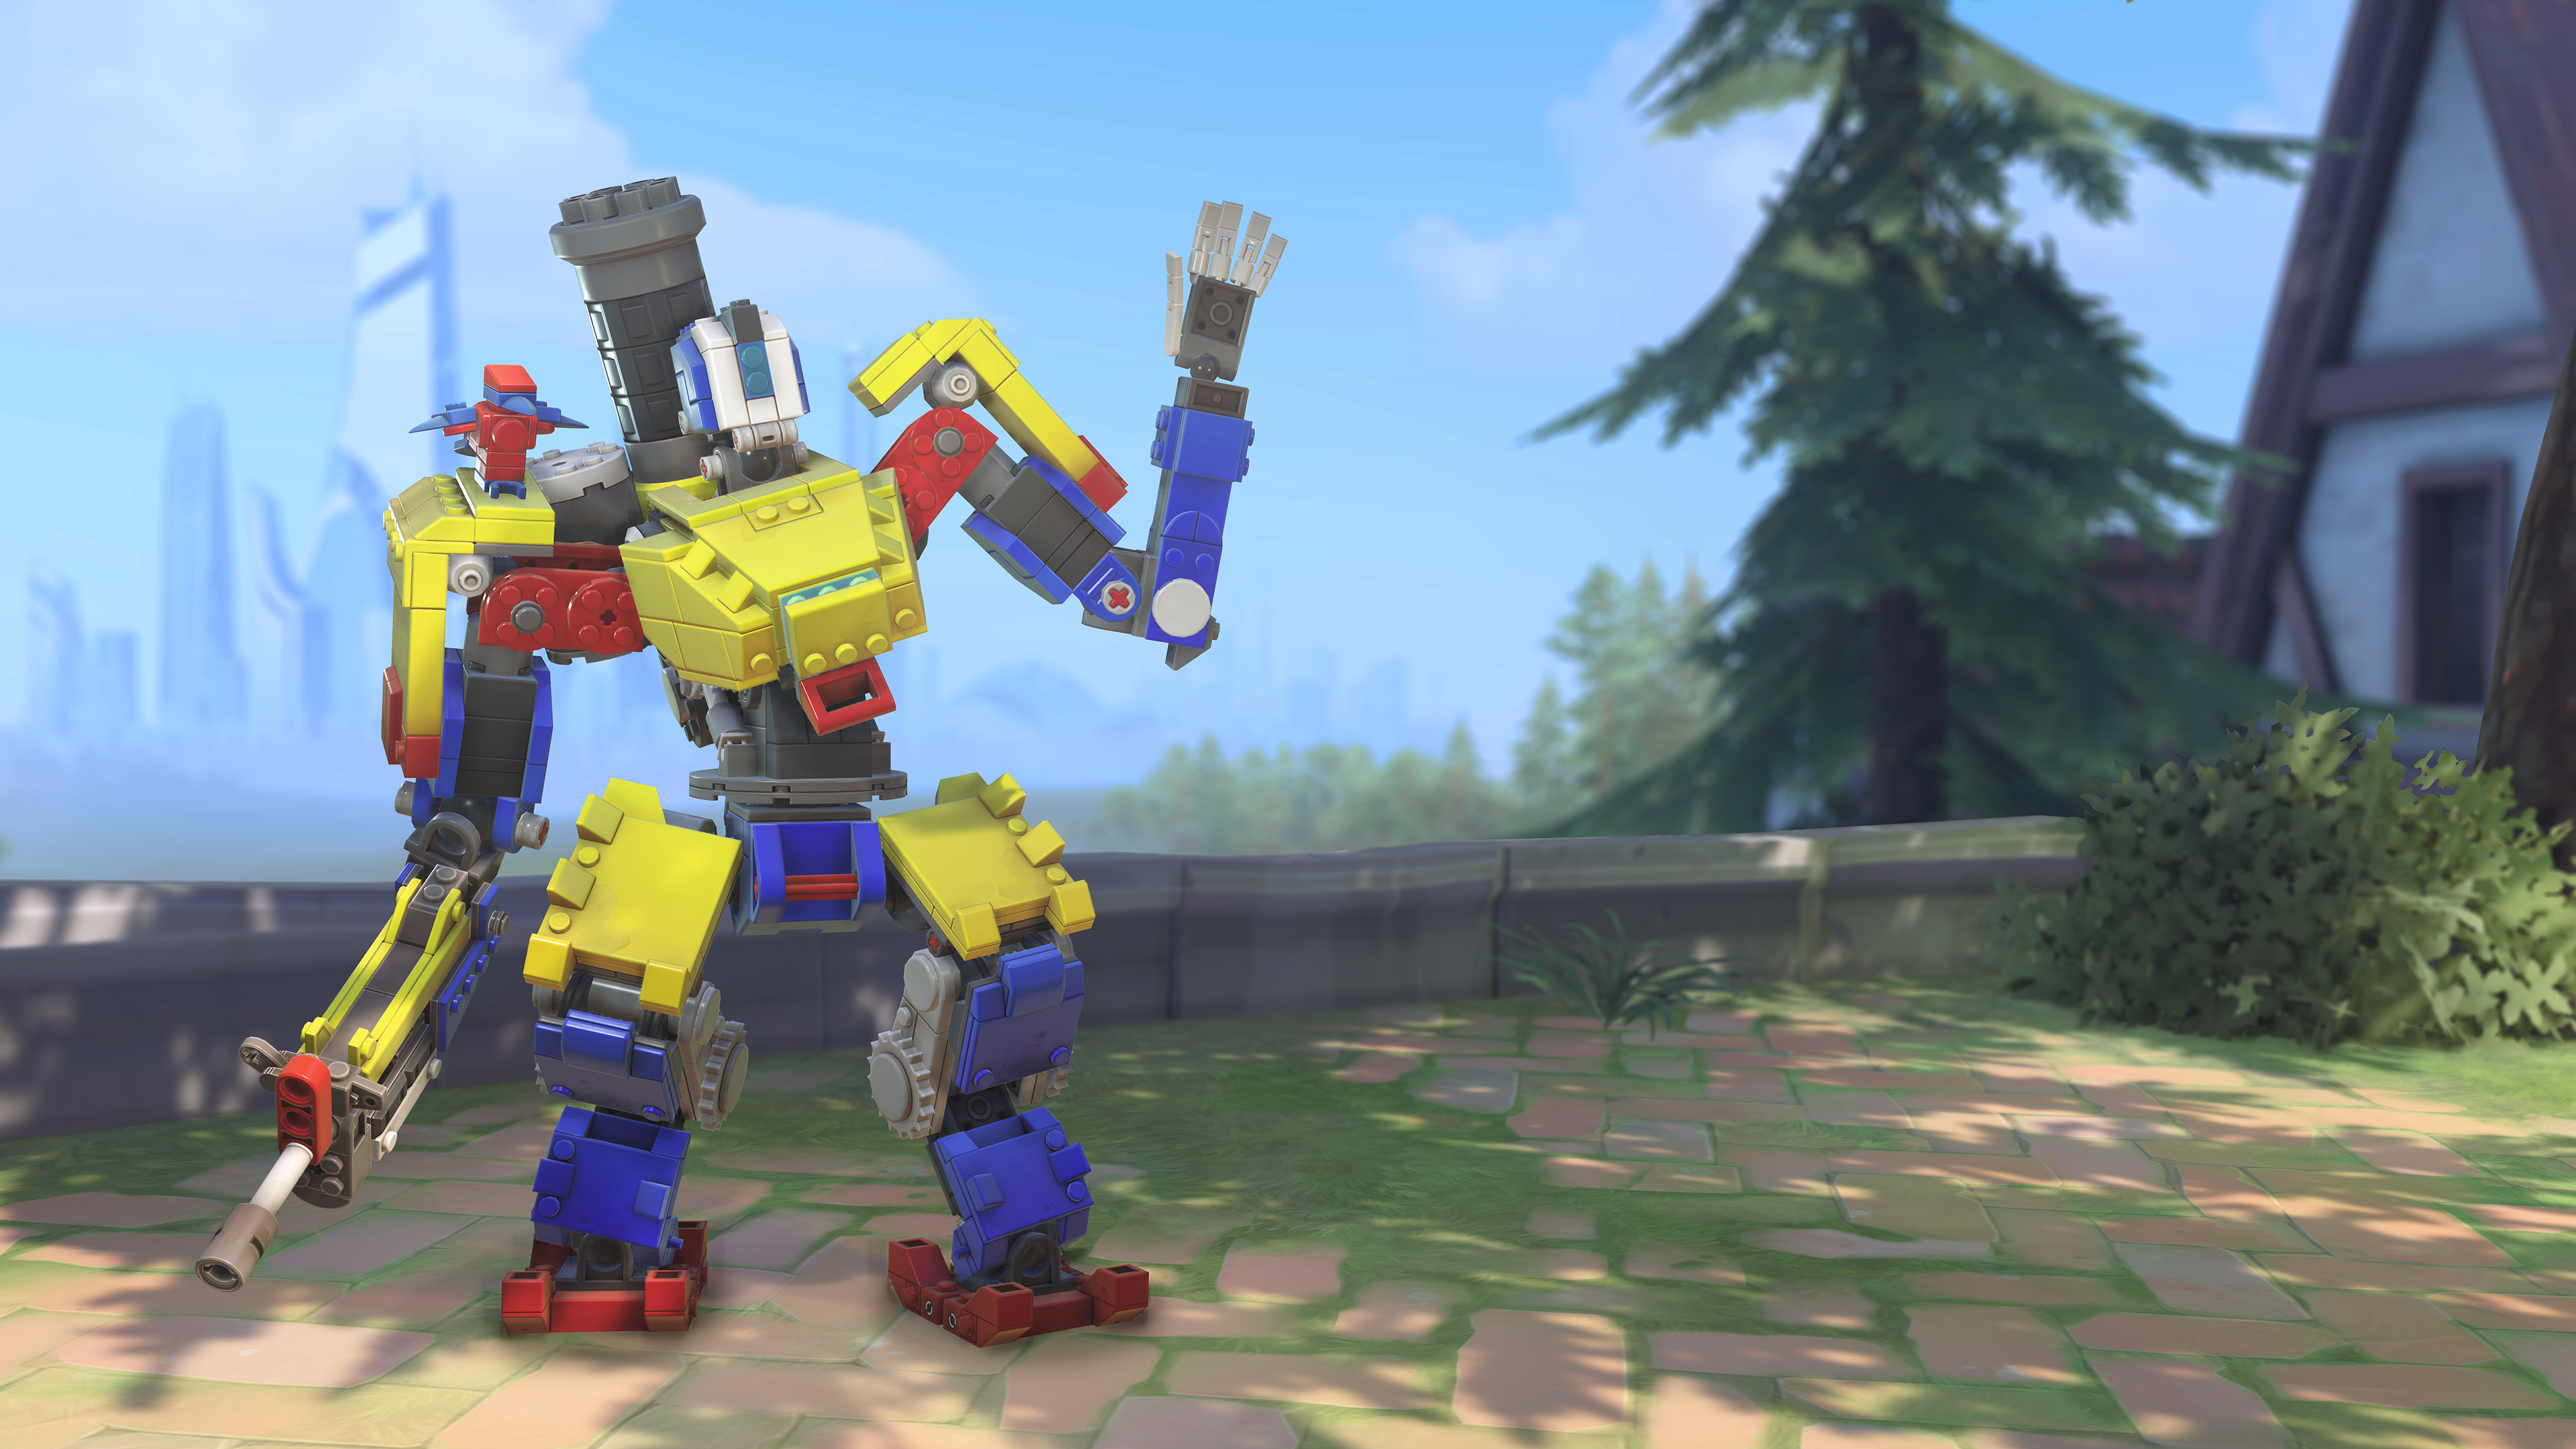 Overwatch opens the toy chest for Bastion's Brick Challenge event